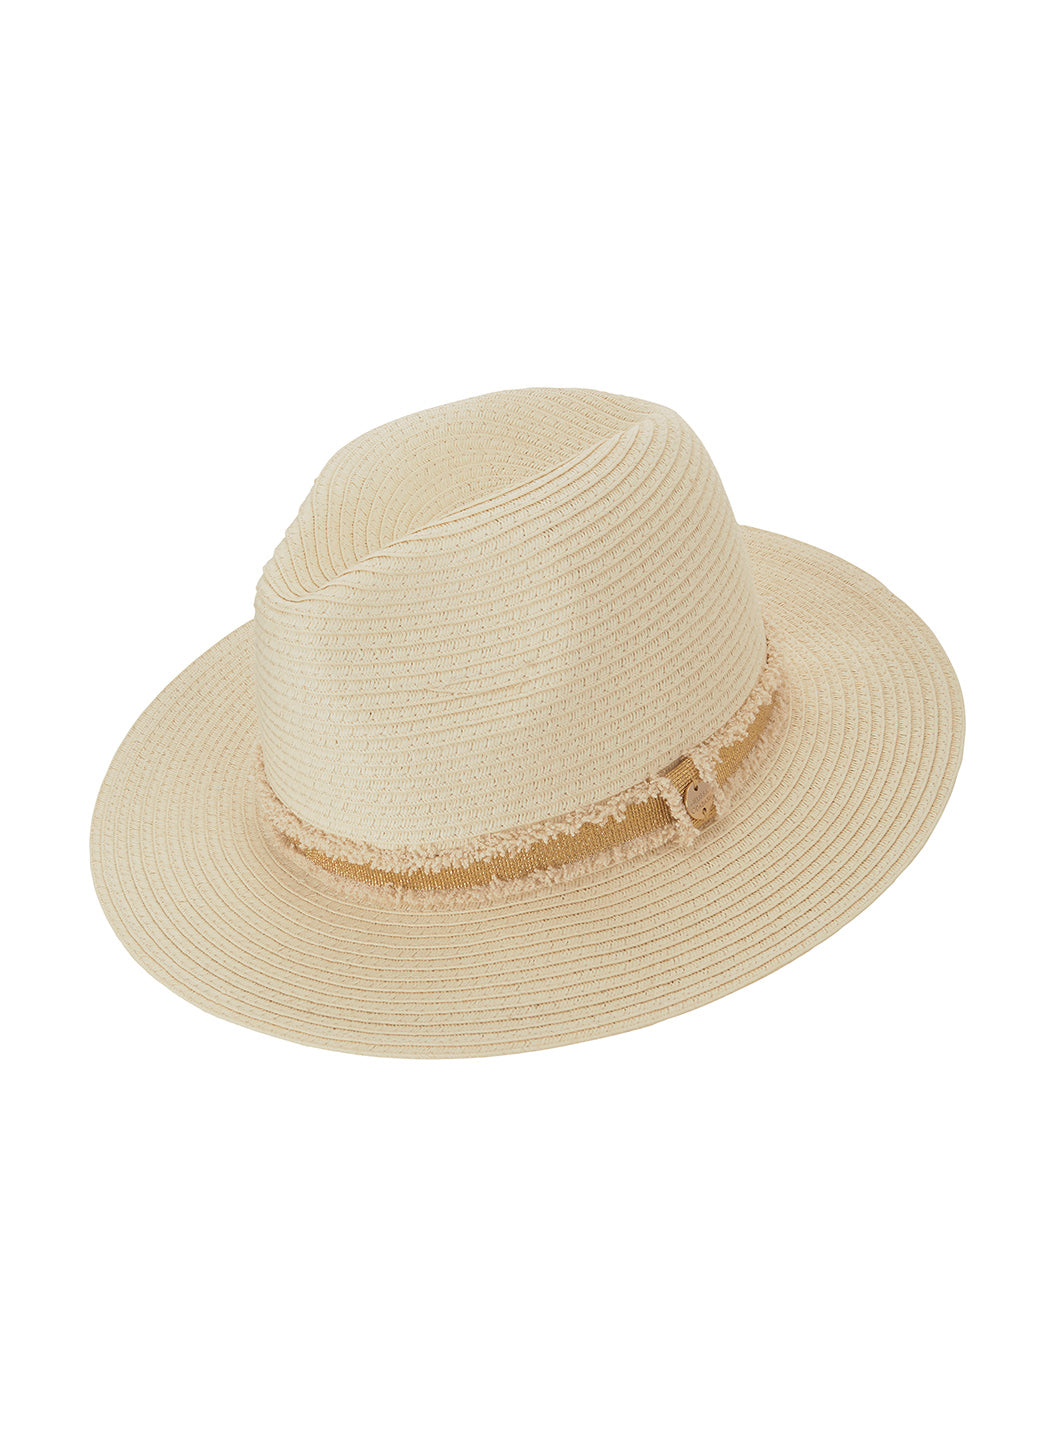 Fedora Hat Cream Gold - Melissa Odabash Accessories